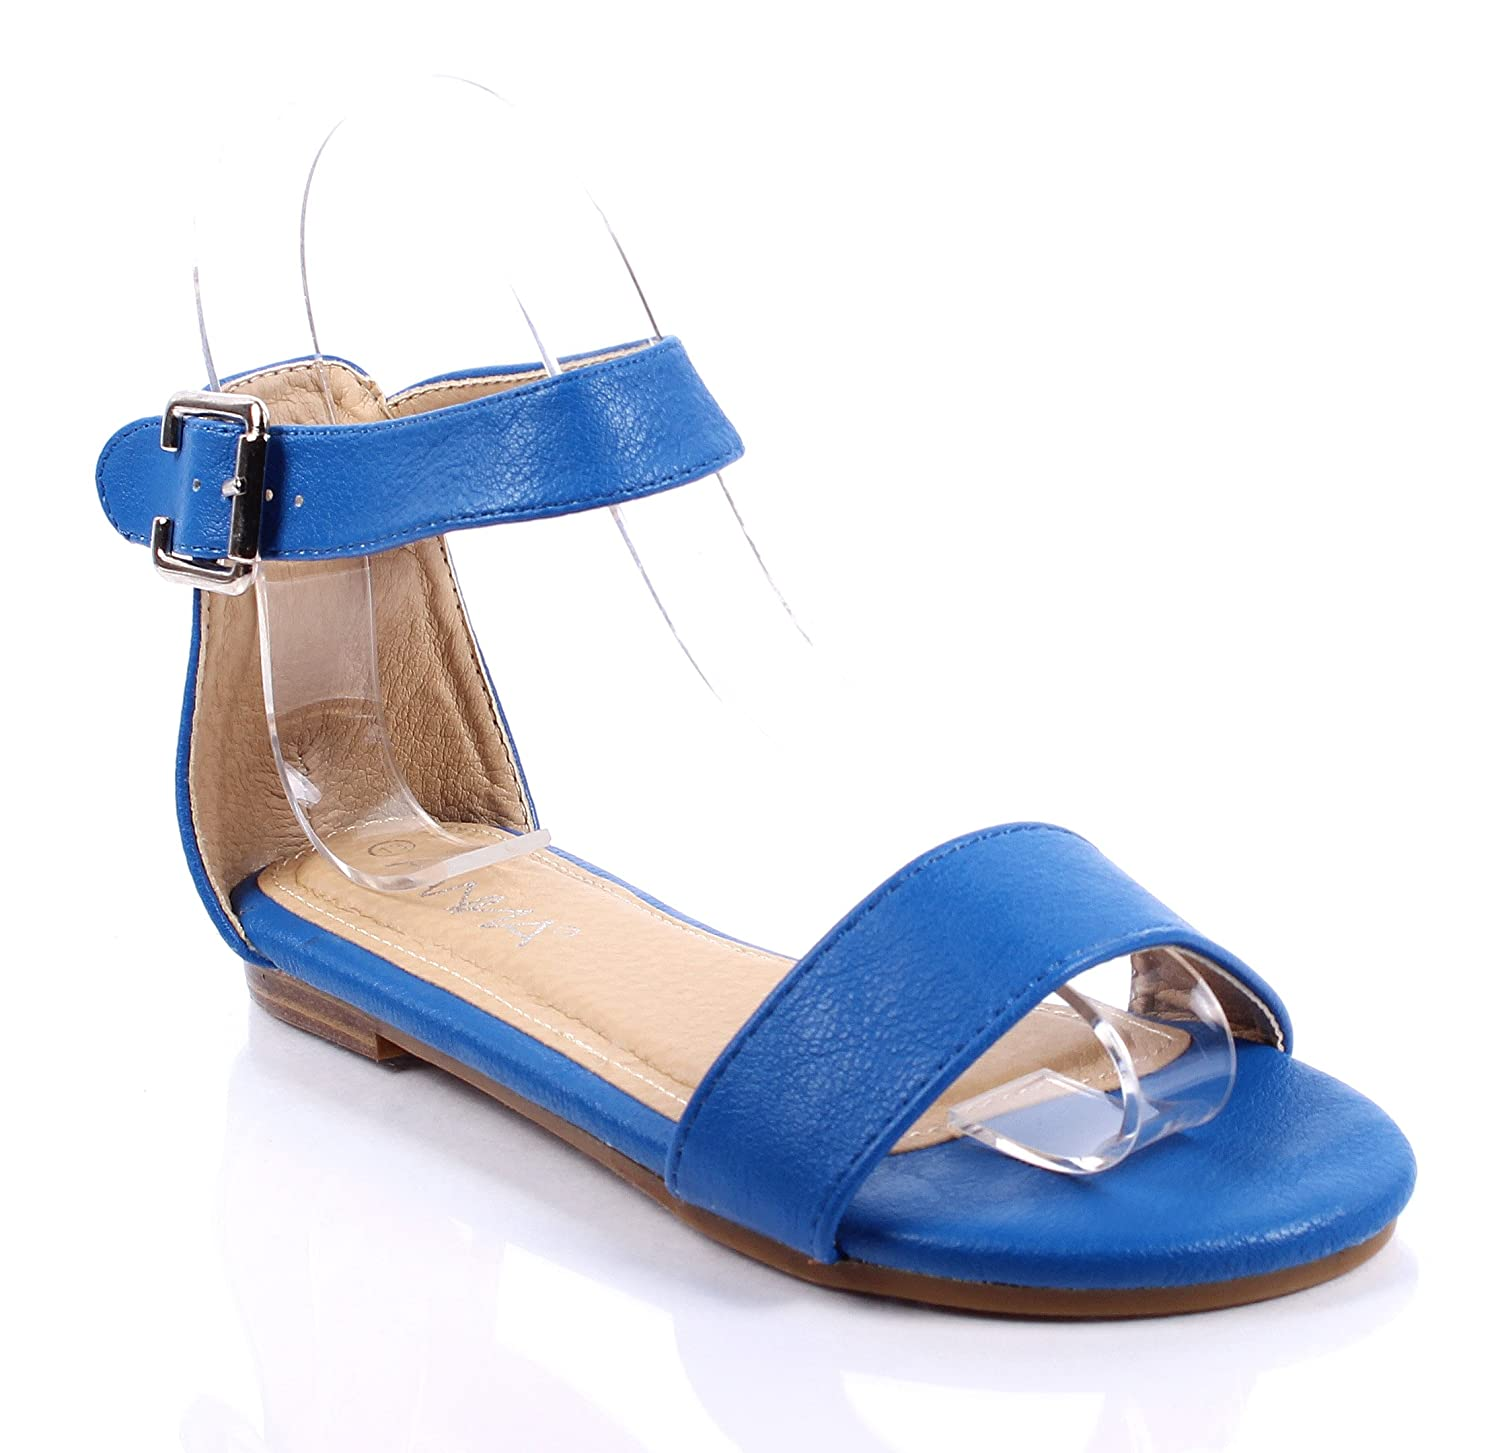 Other Cute Ankle Strappy Buckle Silp on Casual Girls Summer Sandals Youth Kids Shoes Size New Without Box